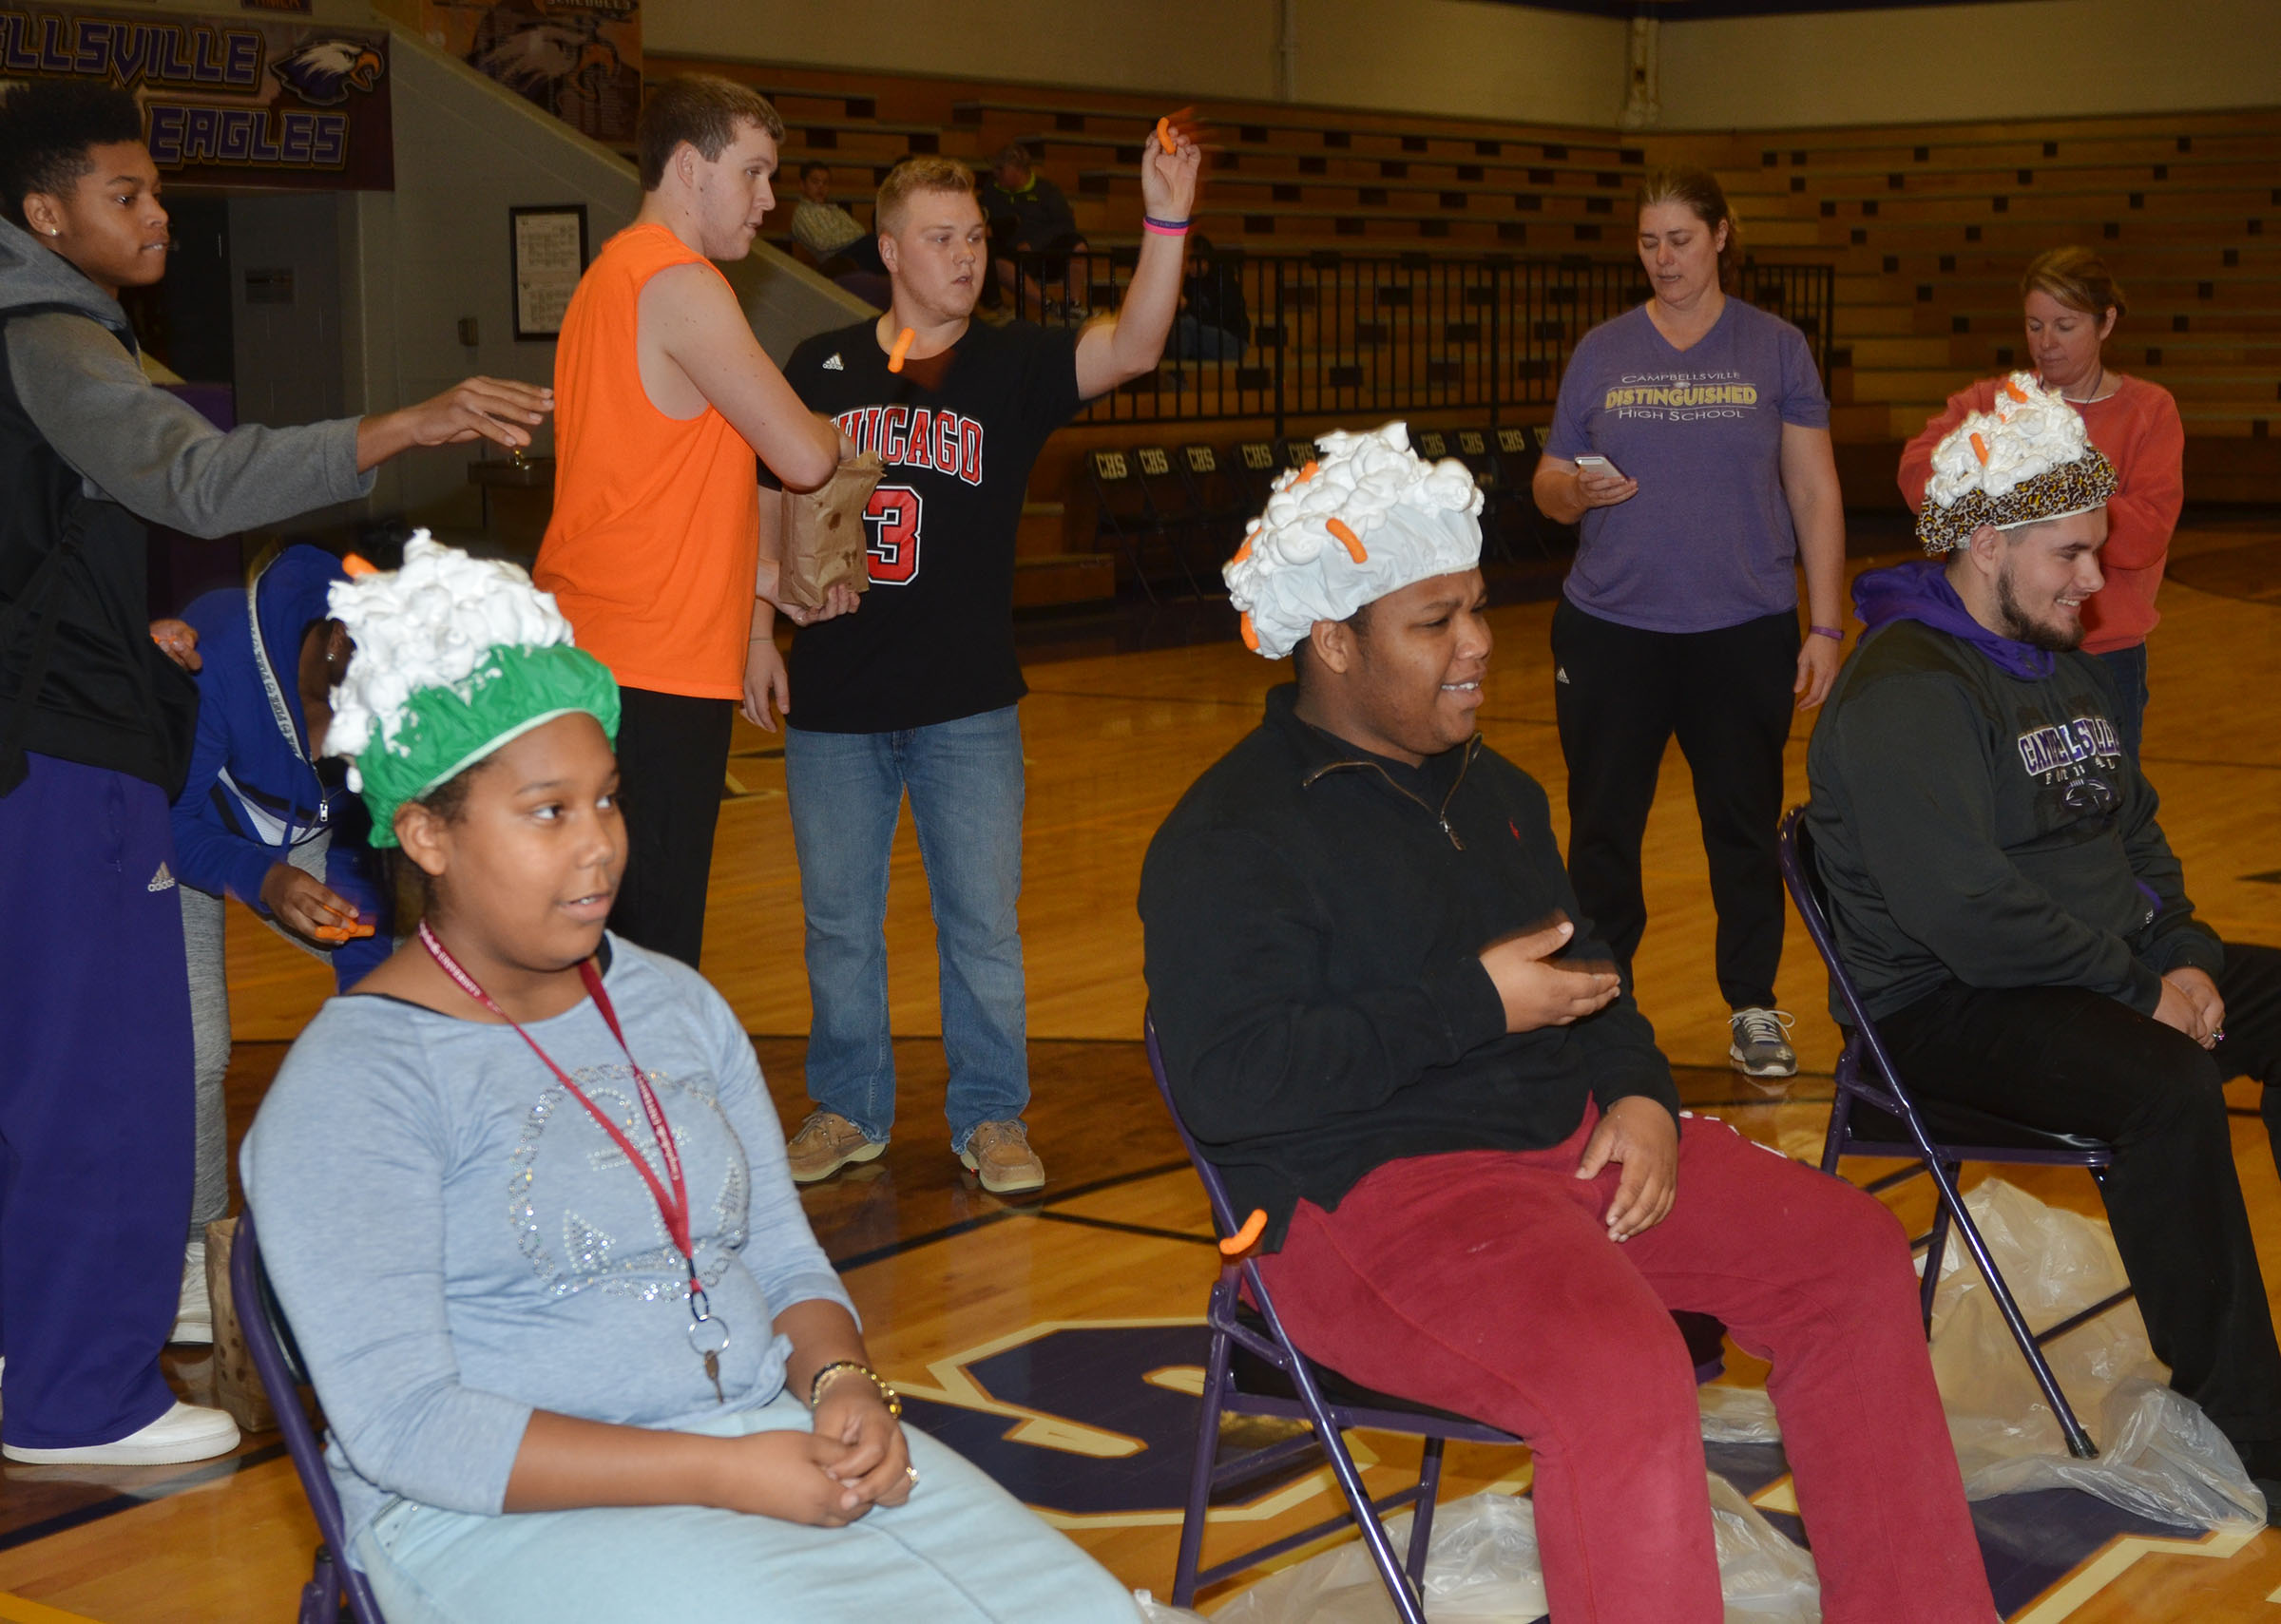 CHS students play the Cheetos and shaving cream game.